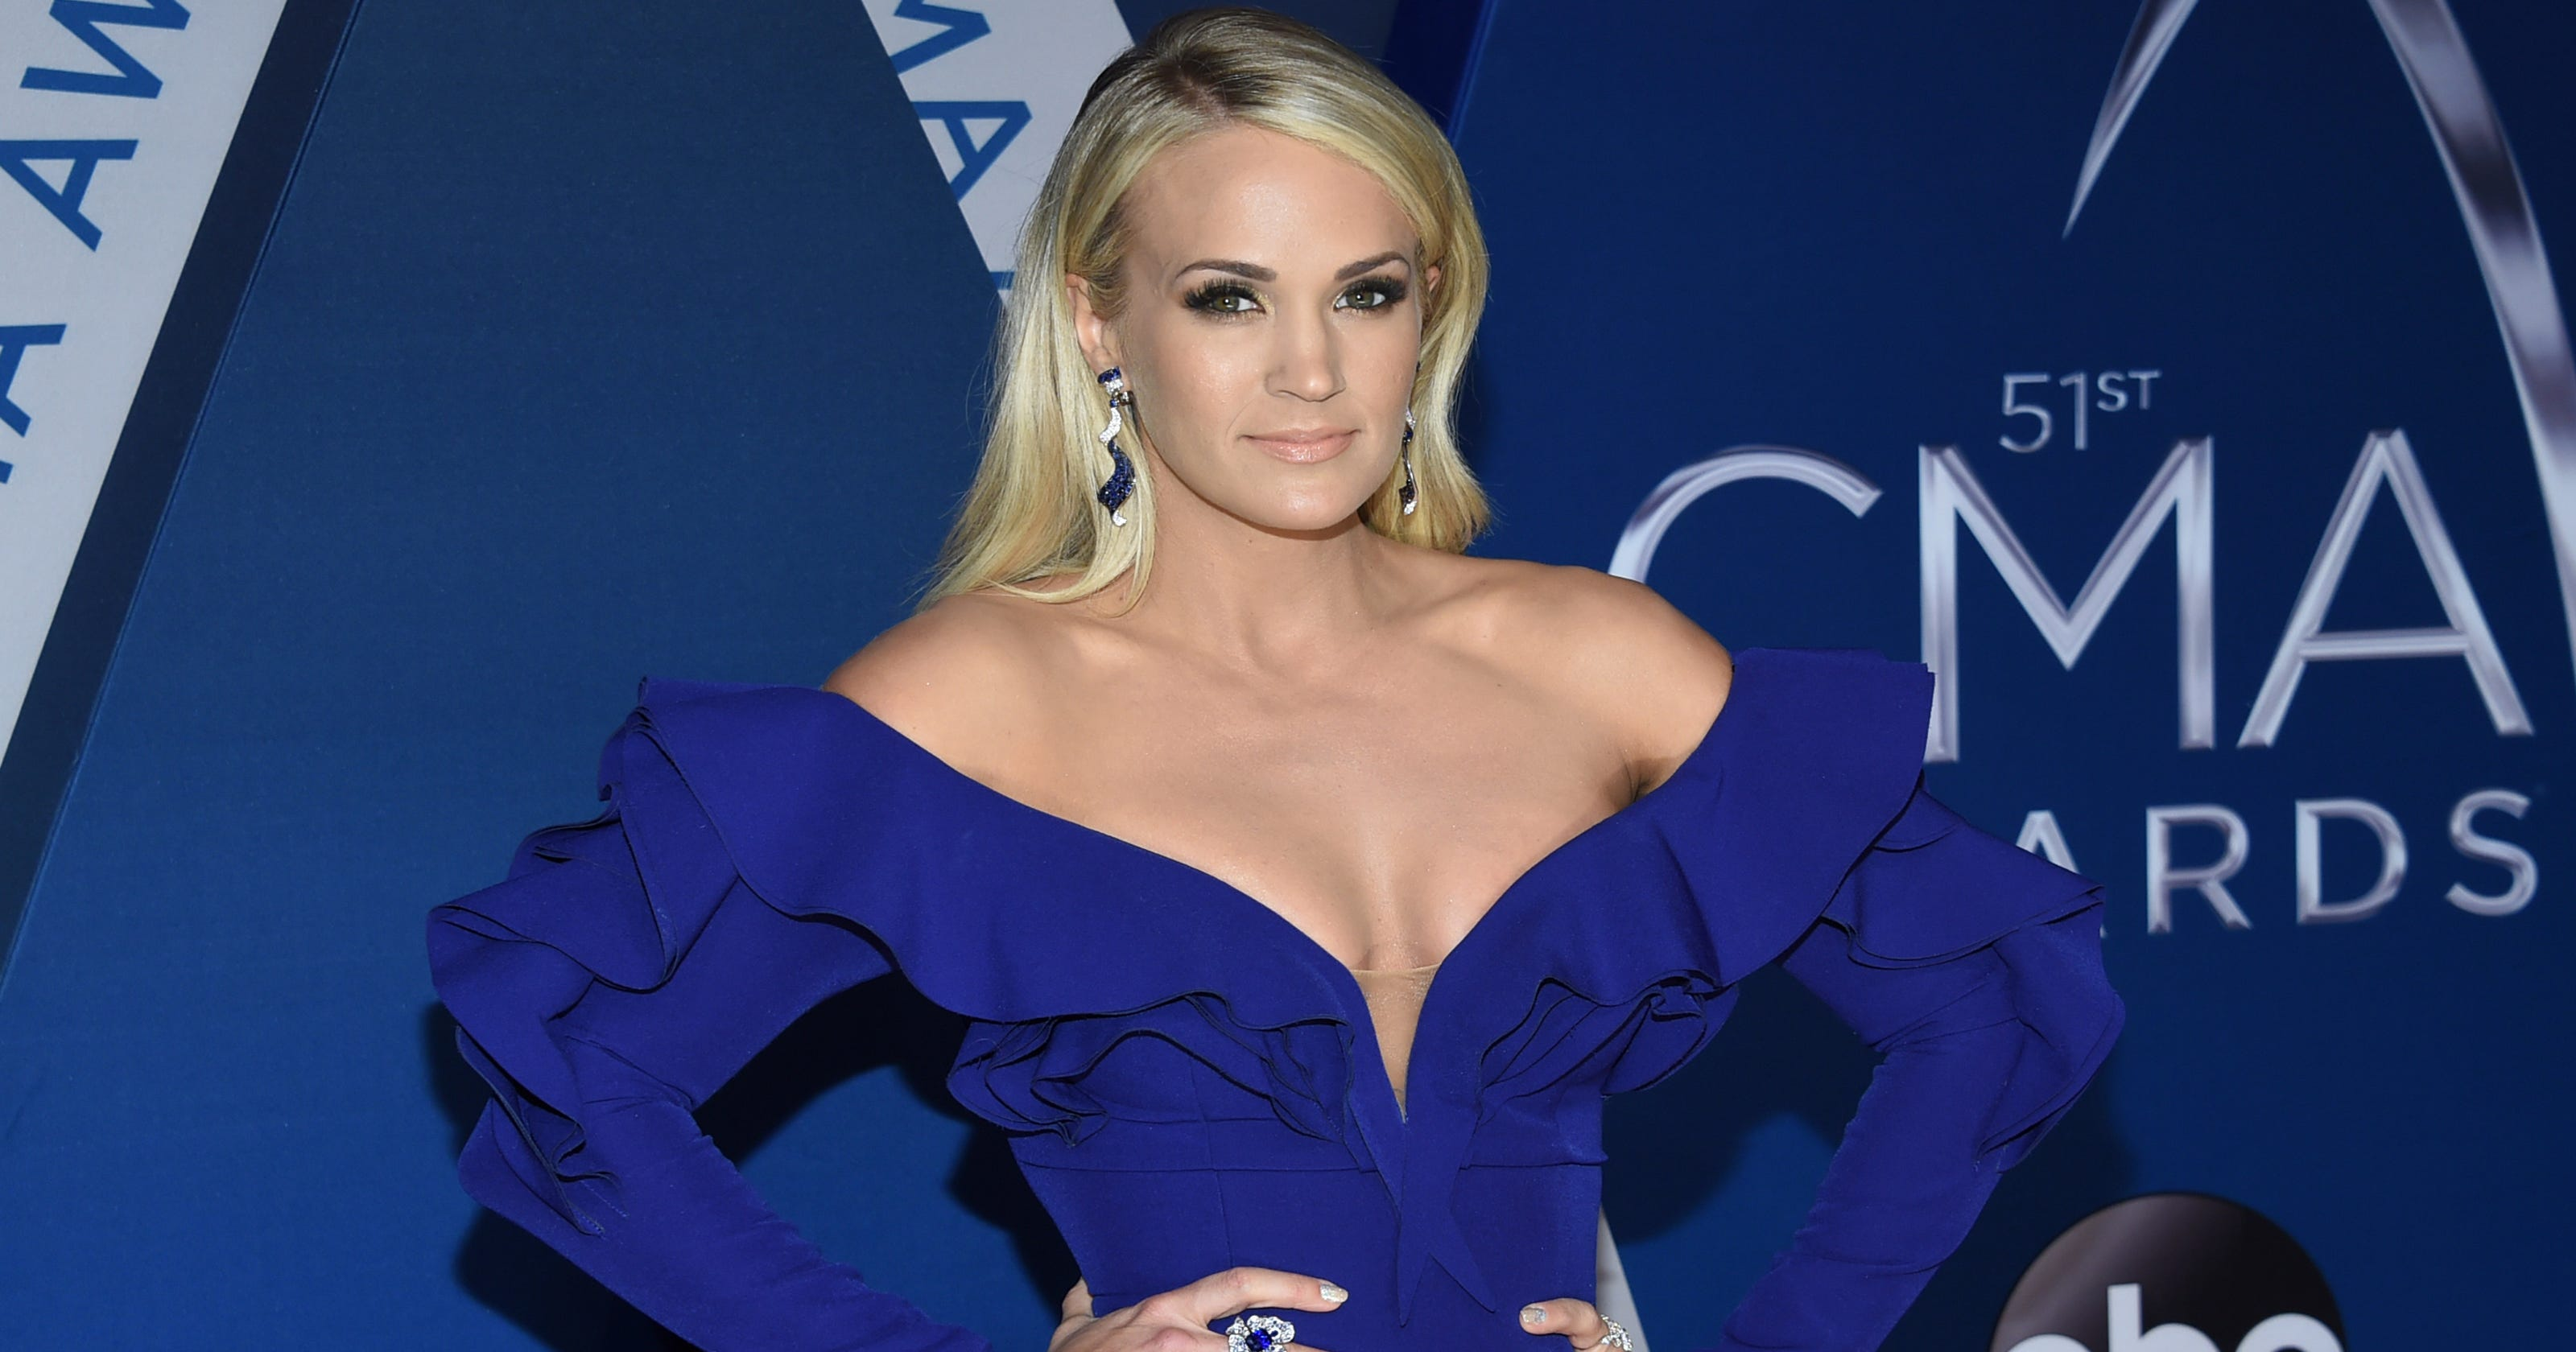 Carrie Underwood drops pop track \'The Champion\' featuring Ludacris